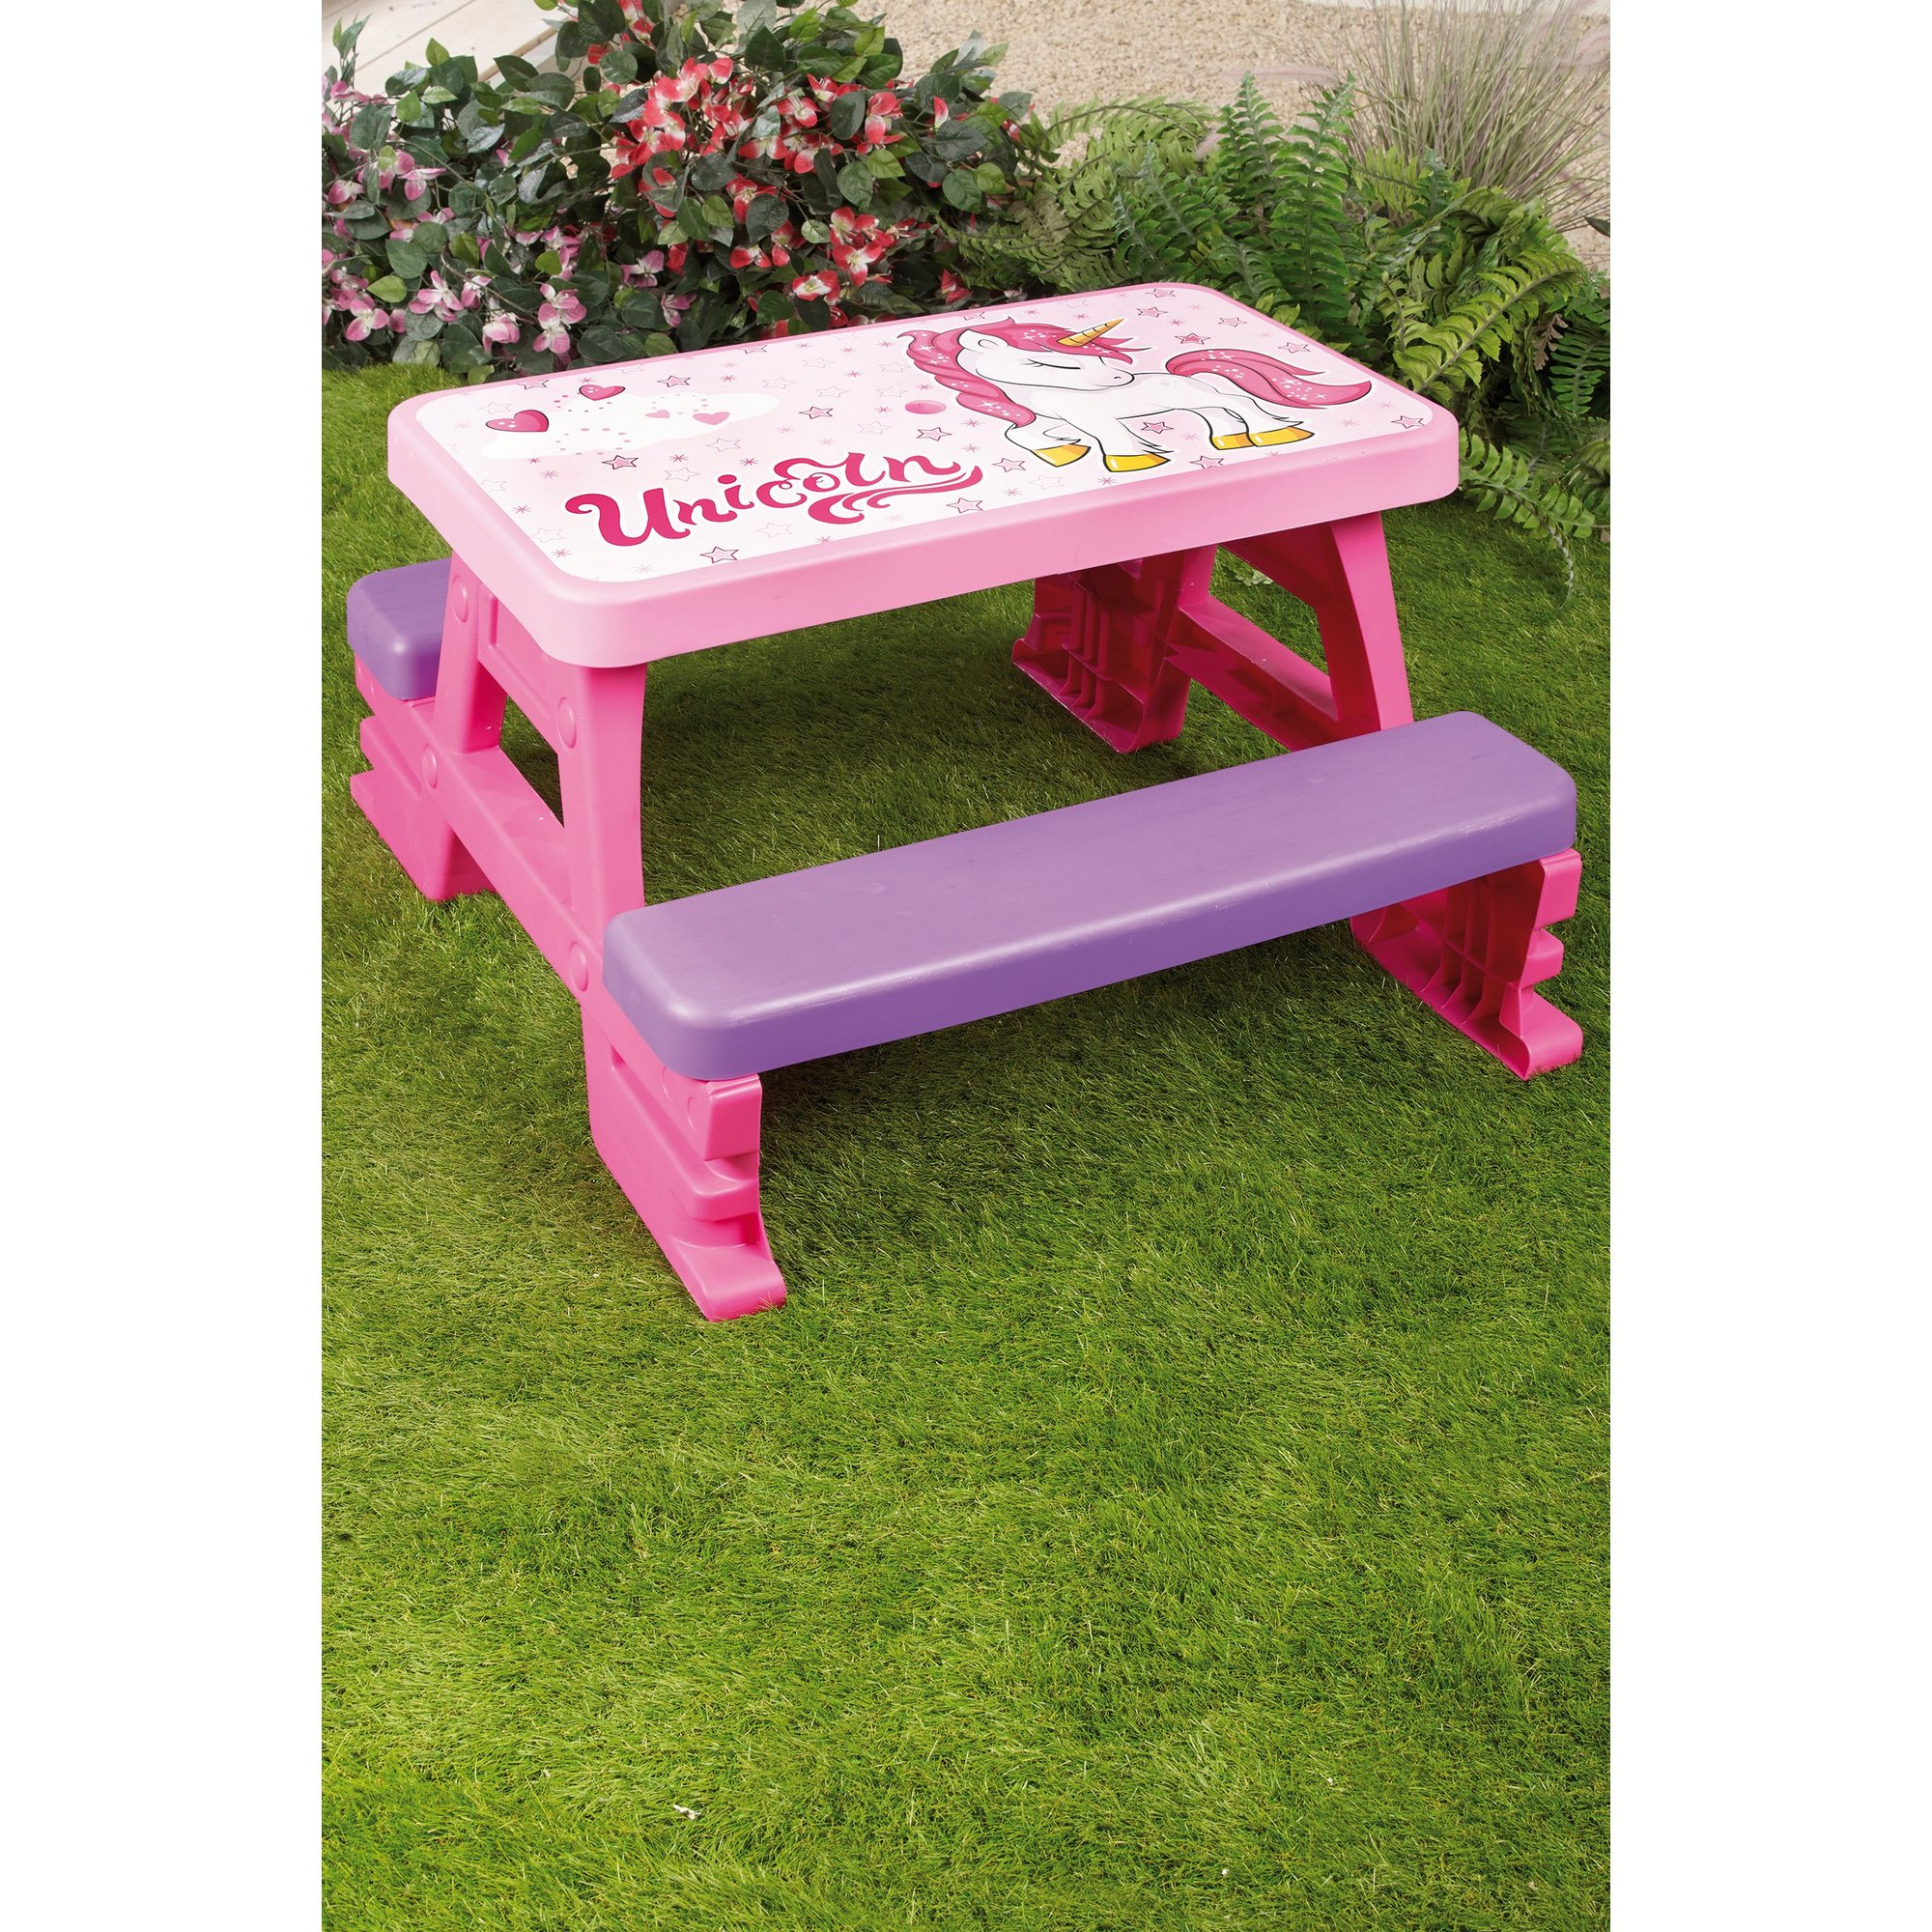 Image of Pink Unicorn Picnic Table